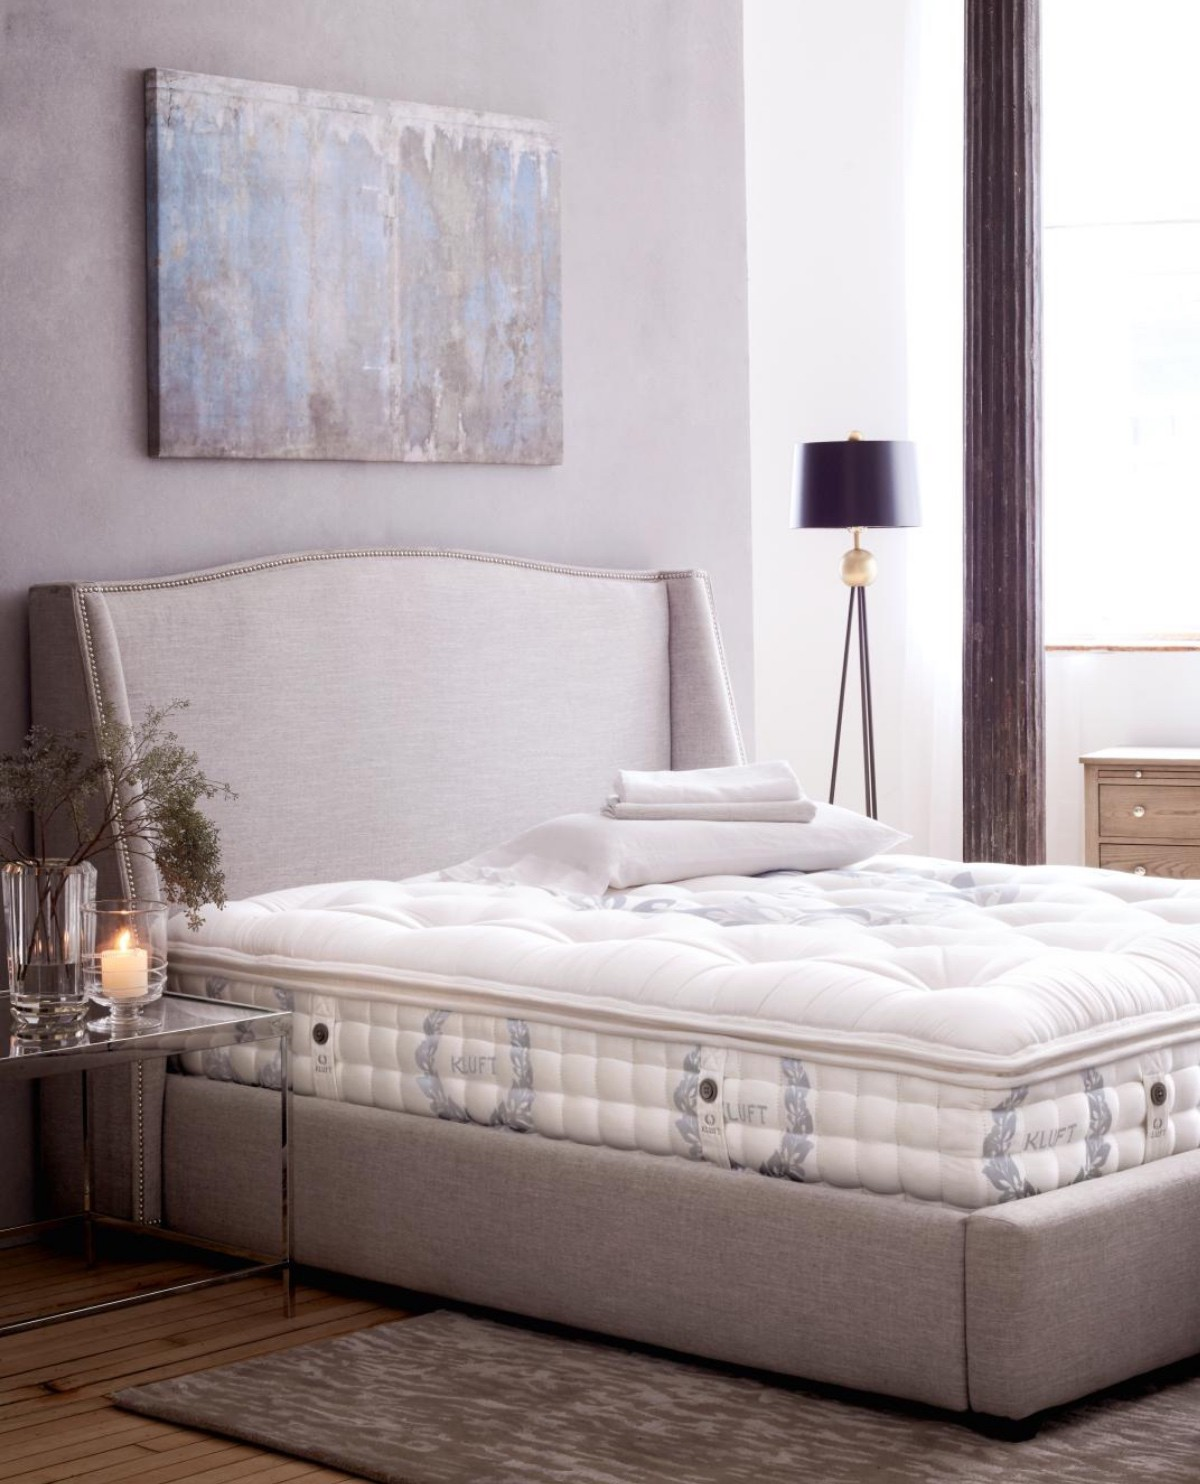 WHY BUY A MATTRESS WITH BLOOMINGDALE'S?